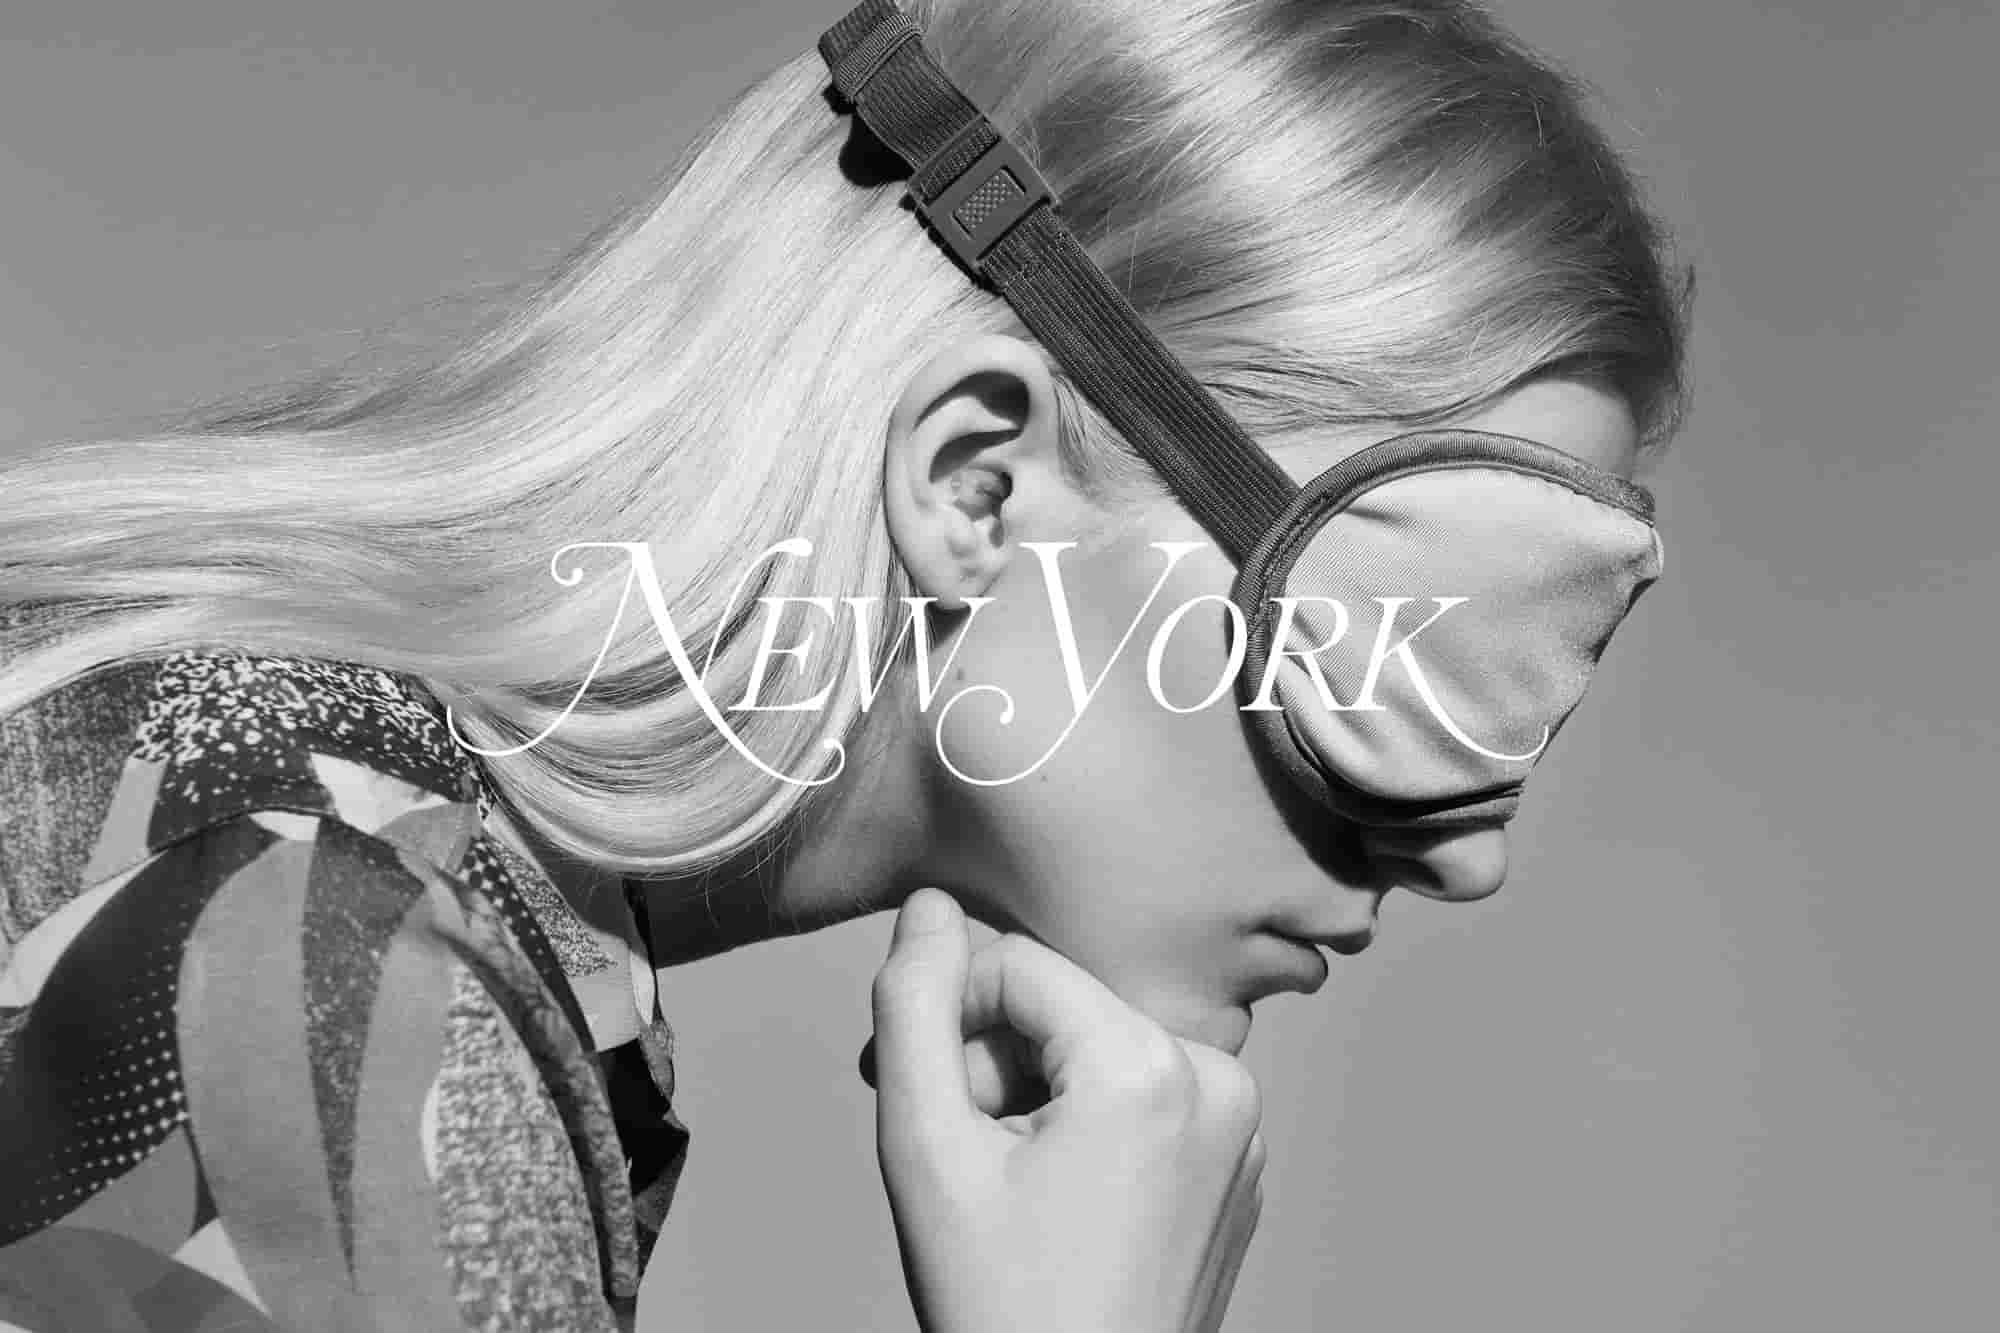 Woman with a sleeping mask and earplugs in ears posing for New York Magazine